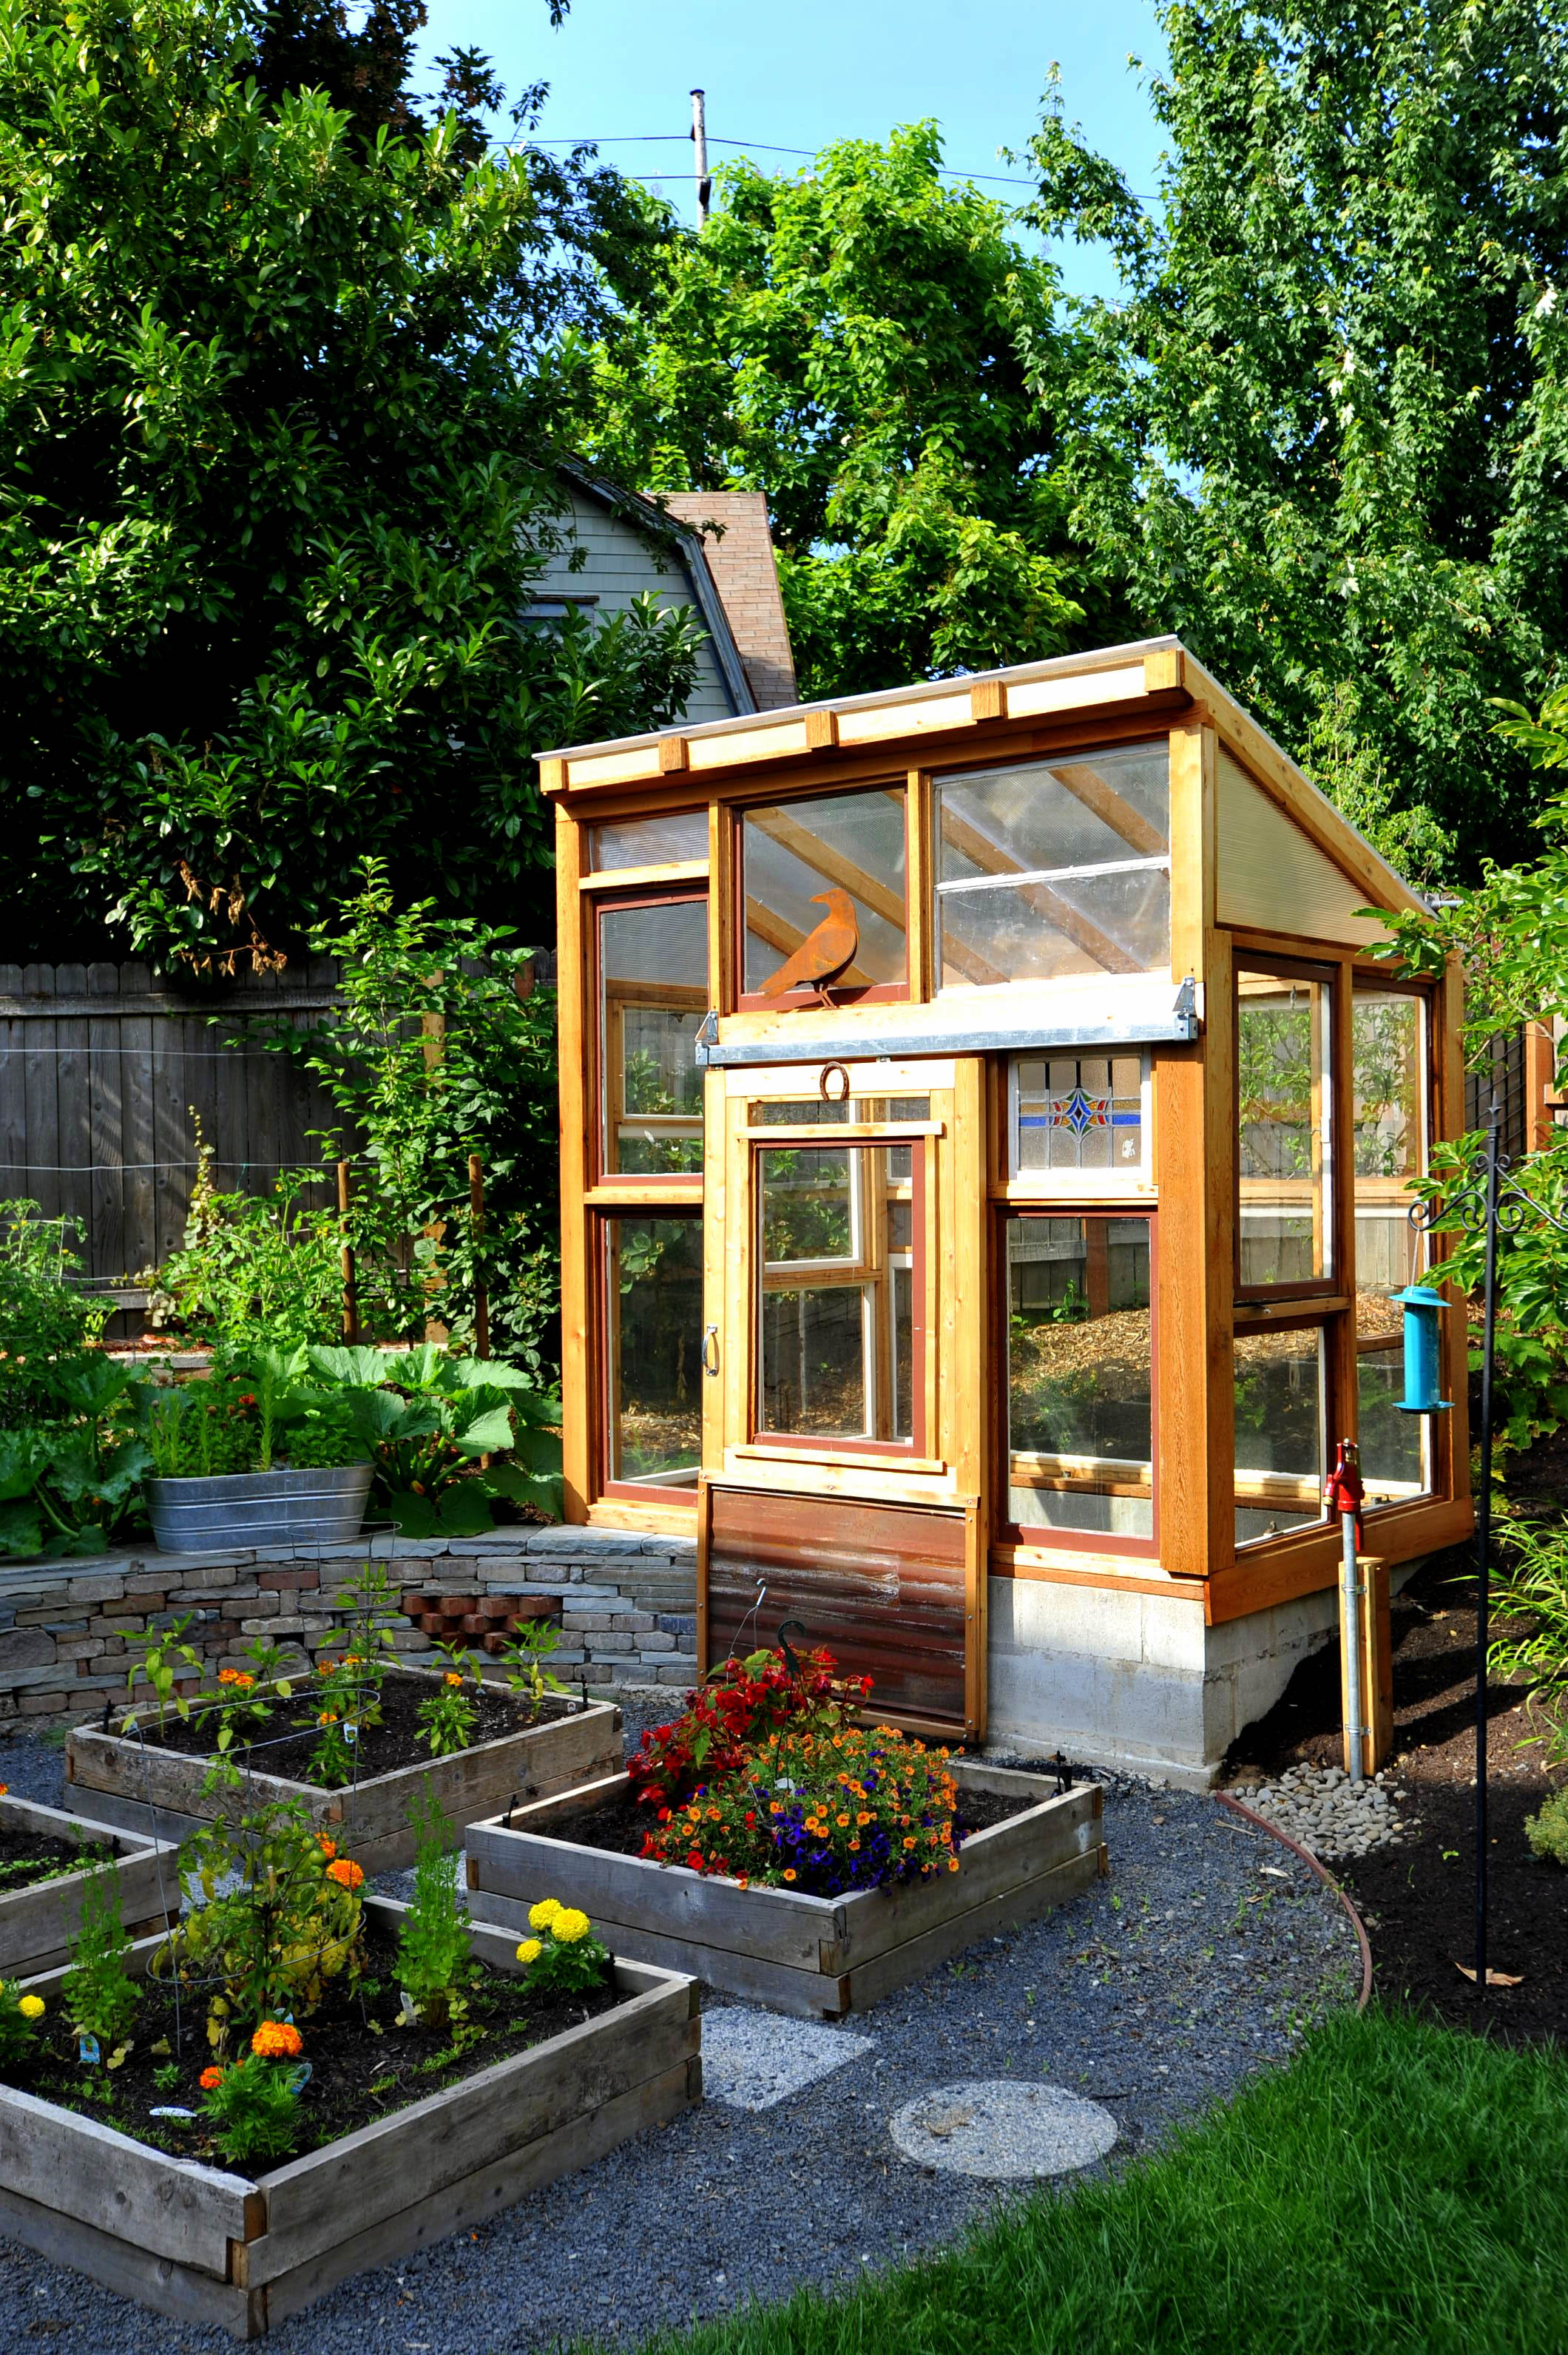 Linked:PlantInn Raised Garden Bed Hobby Greenhouses Under,